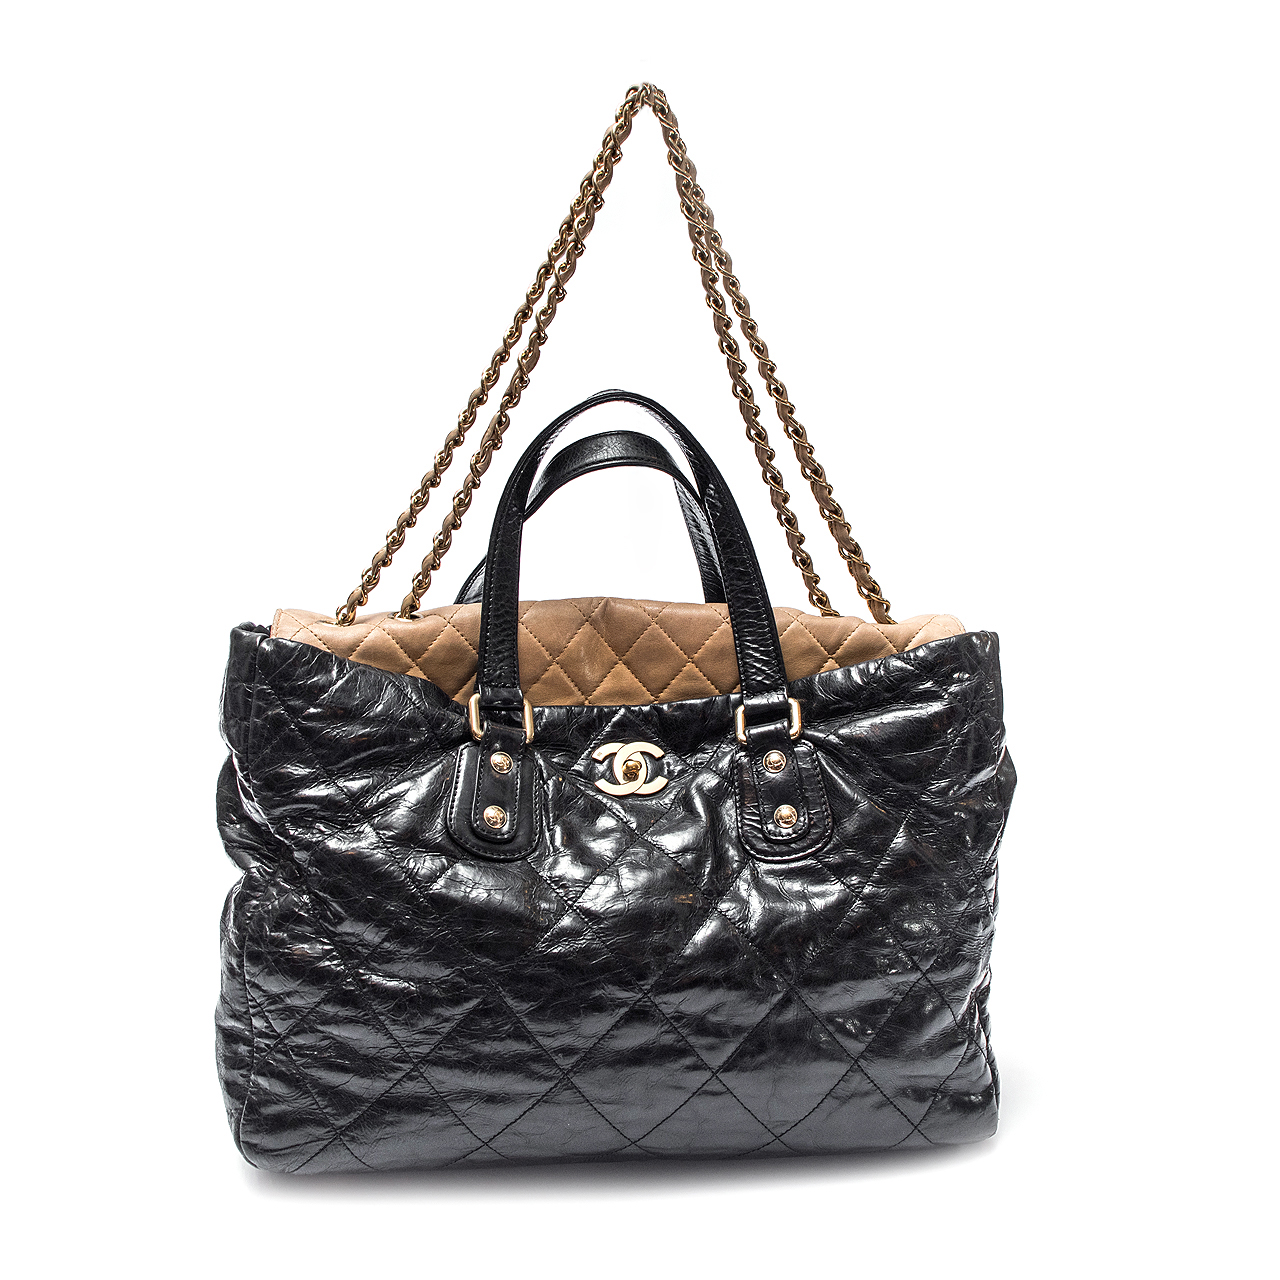 206be5e3d Bolsa Chanel Portobello | Box de Grife